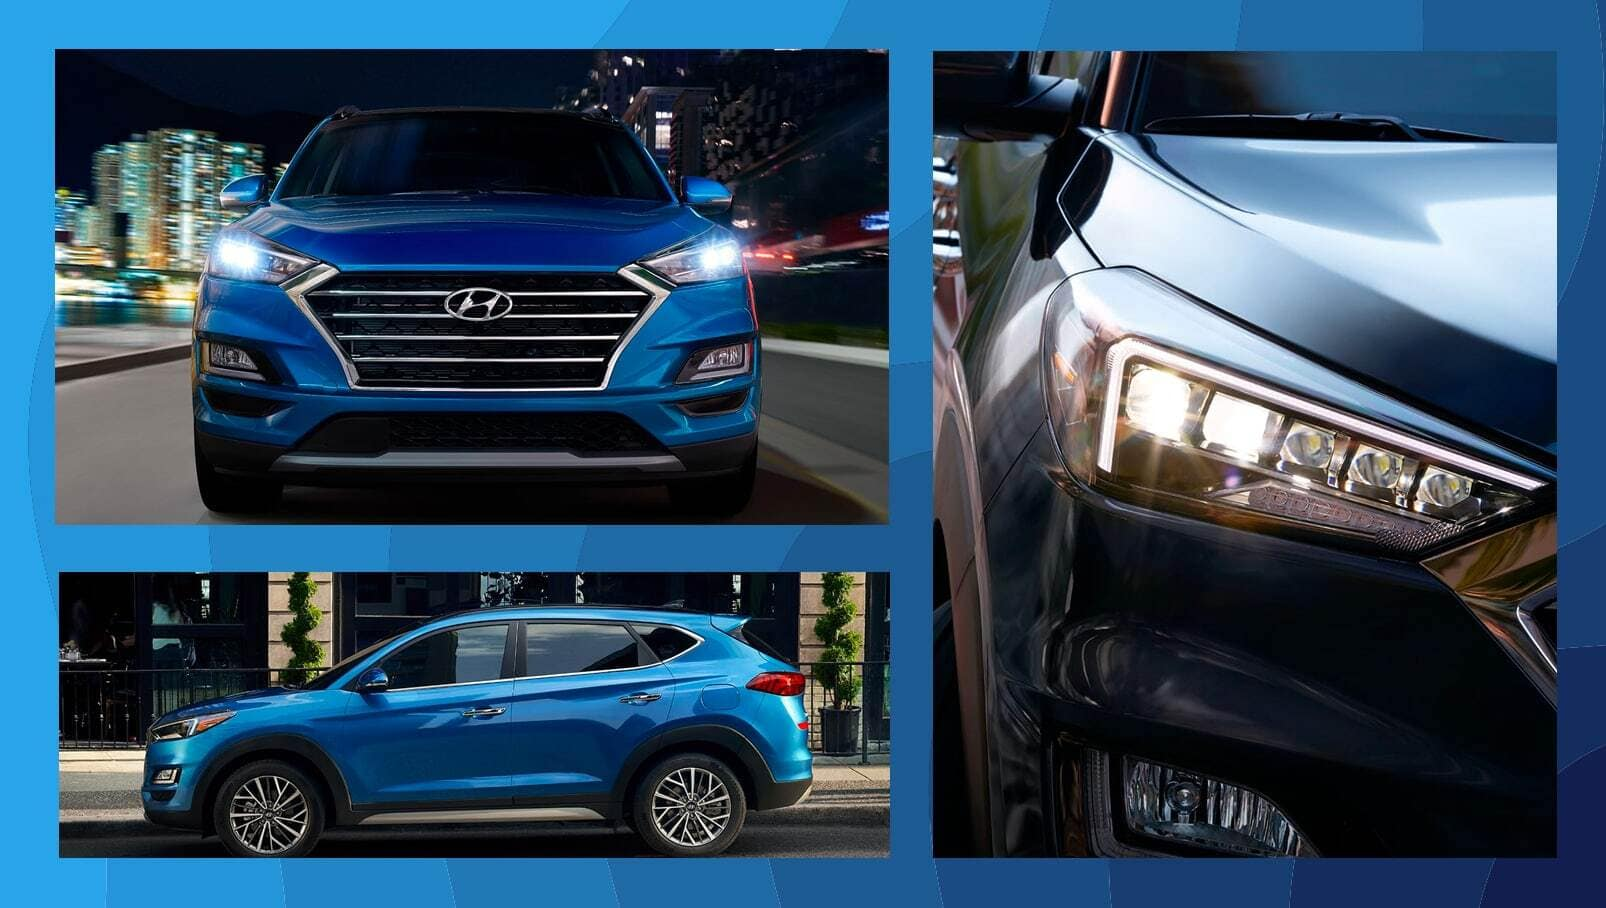 2019 Hyundai Tucson Overview Chicago IL